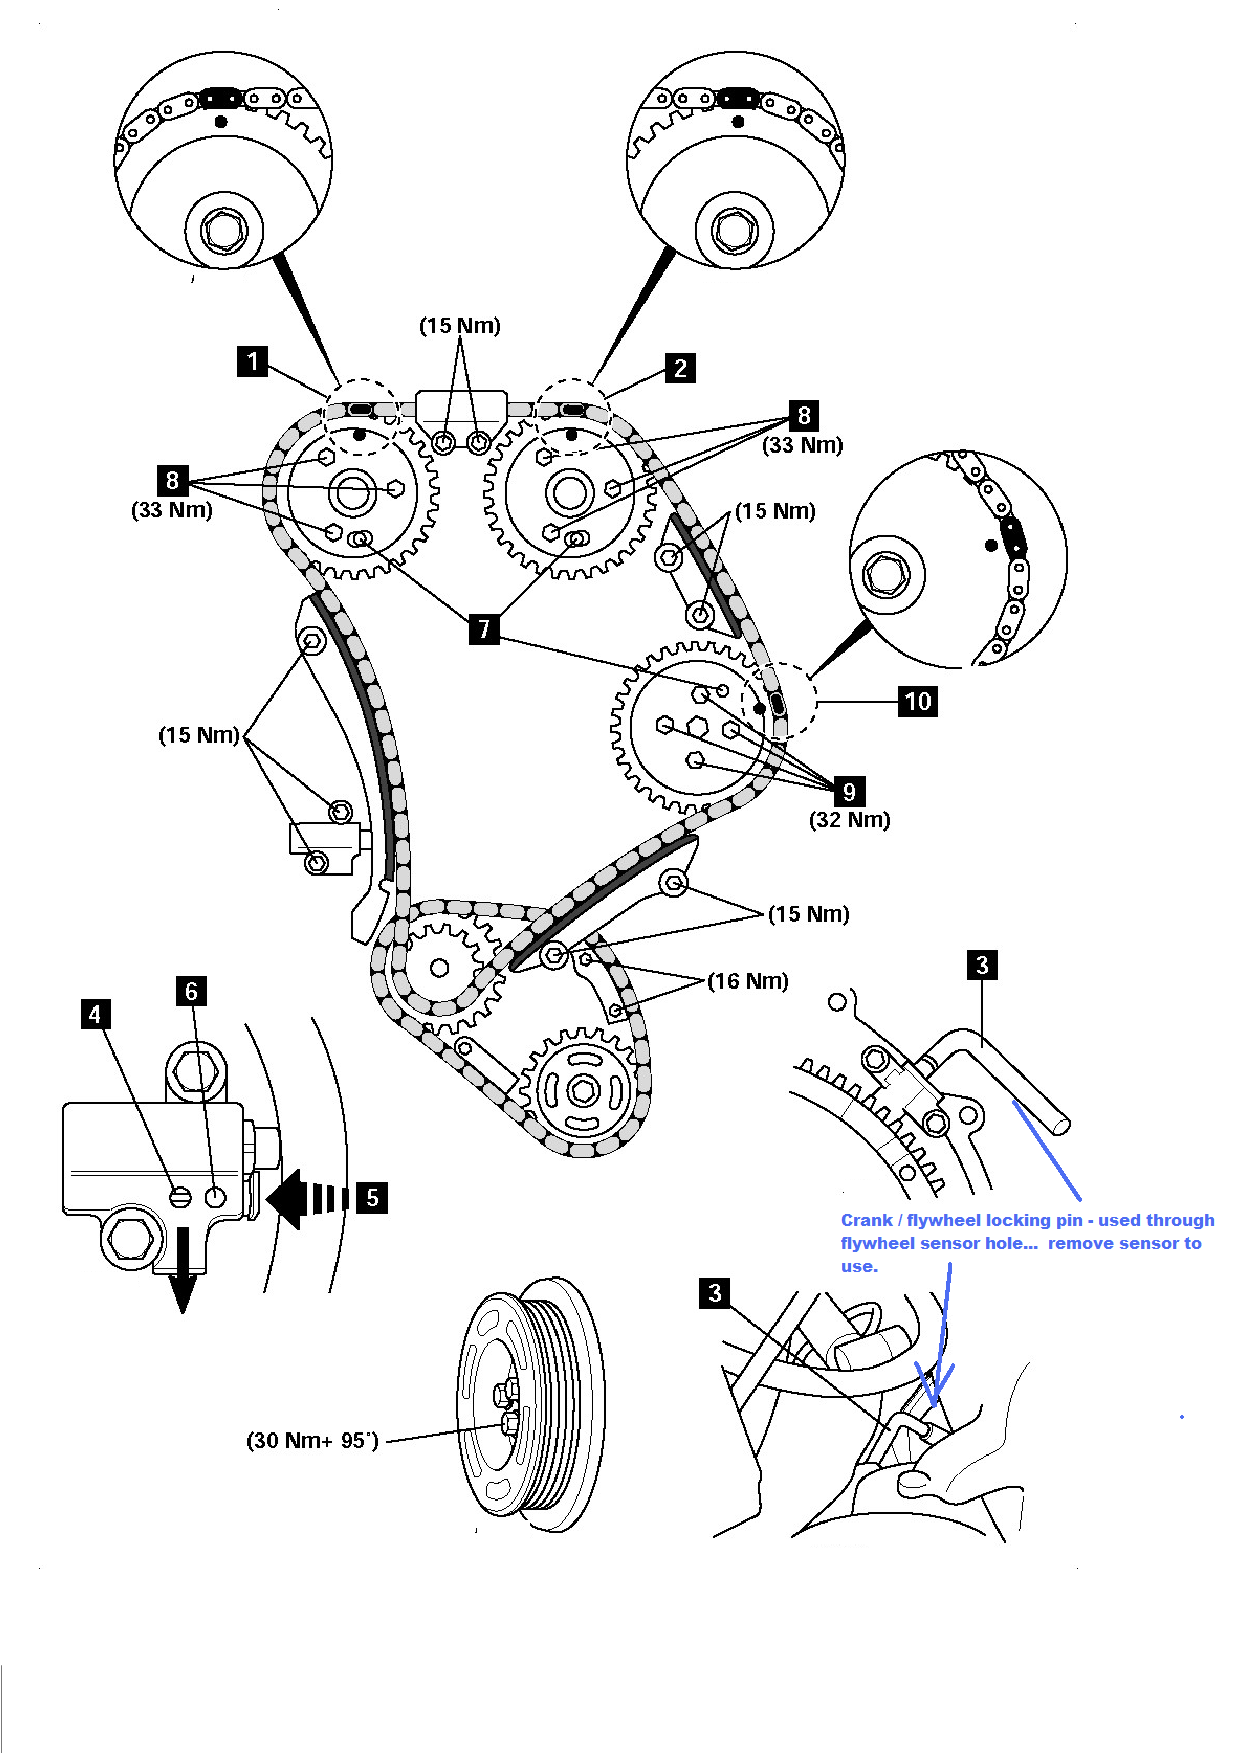 Image Result For Ford Ranger 2 2 Timing Chain Mark Diagram